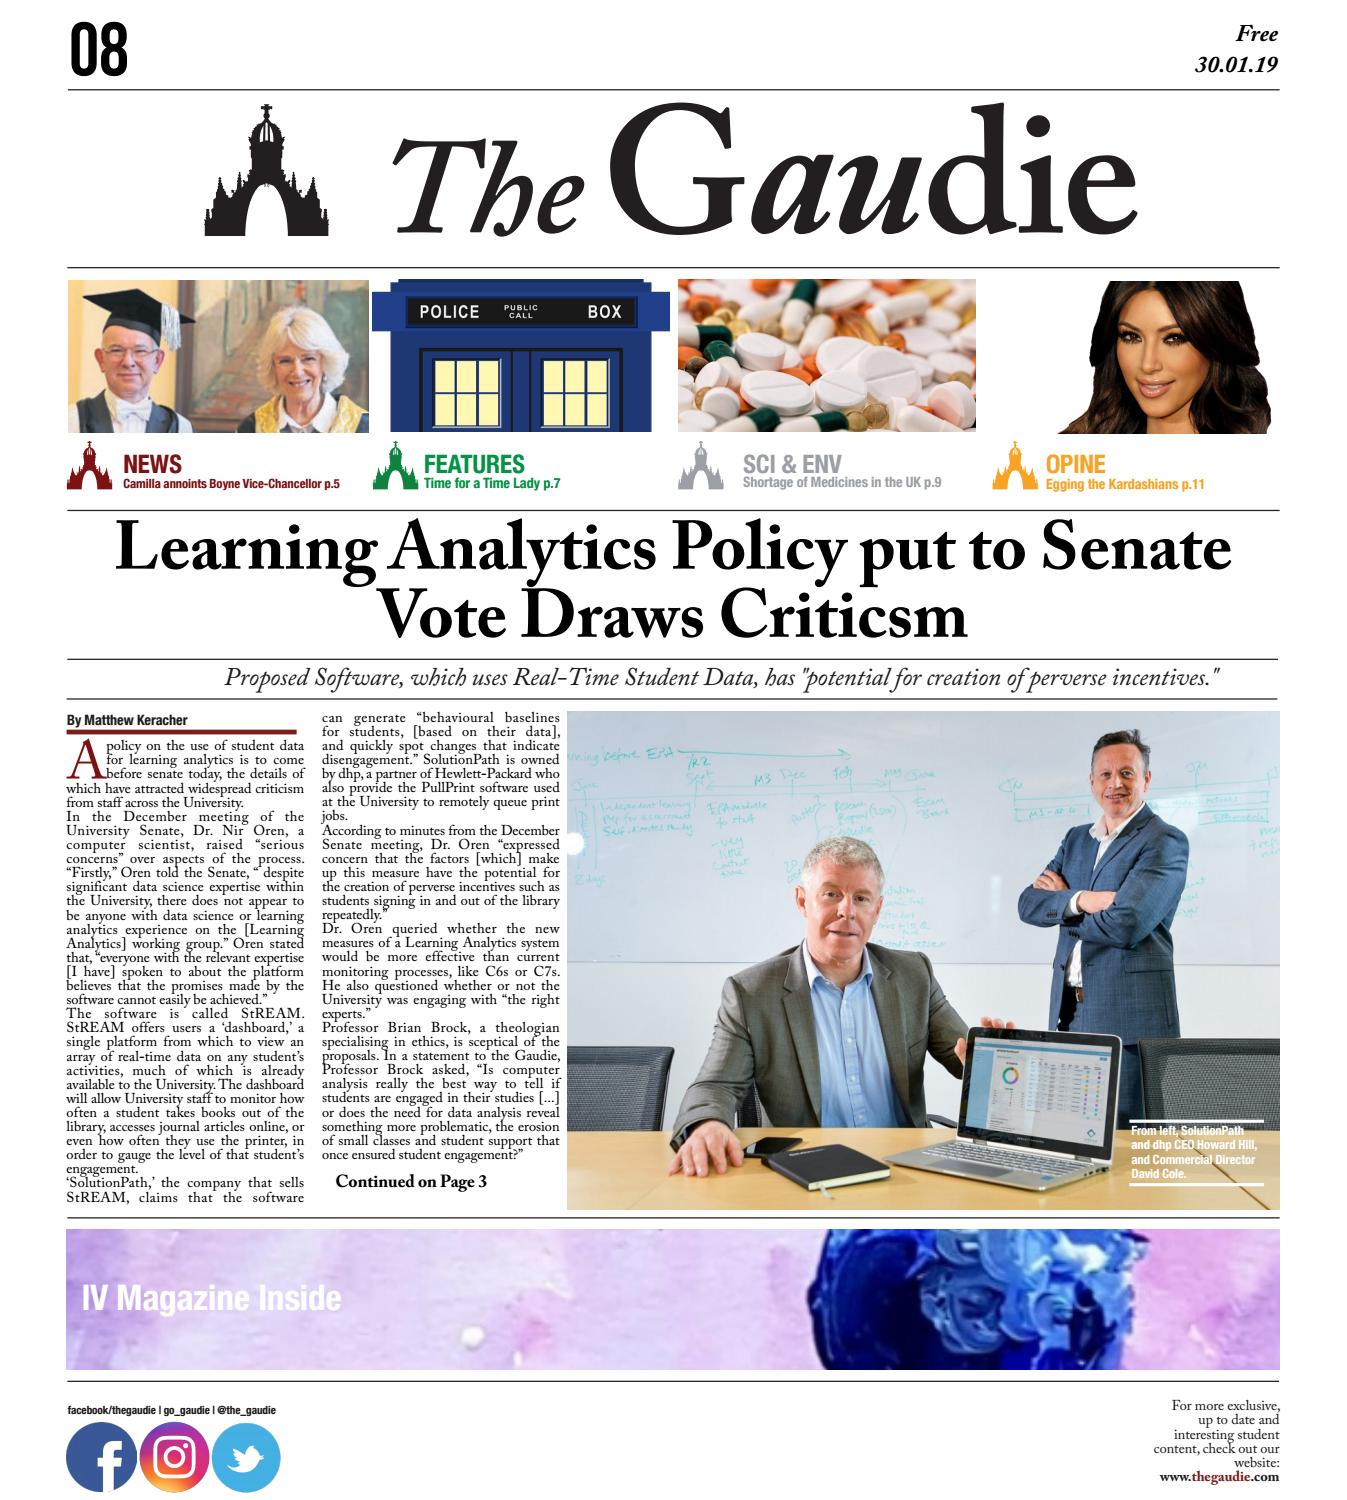 The Gaudie - 30 01 19 by The Gaudie - issuu